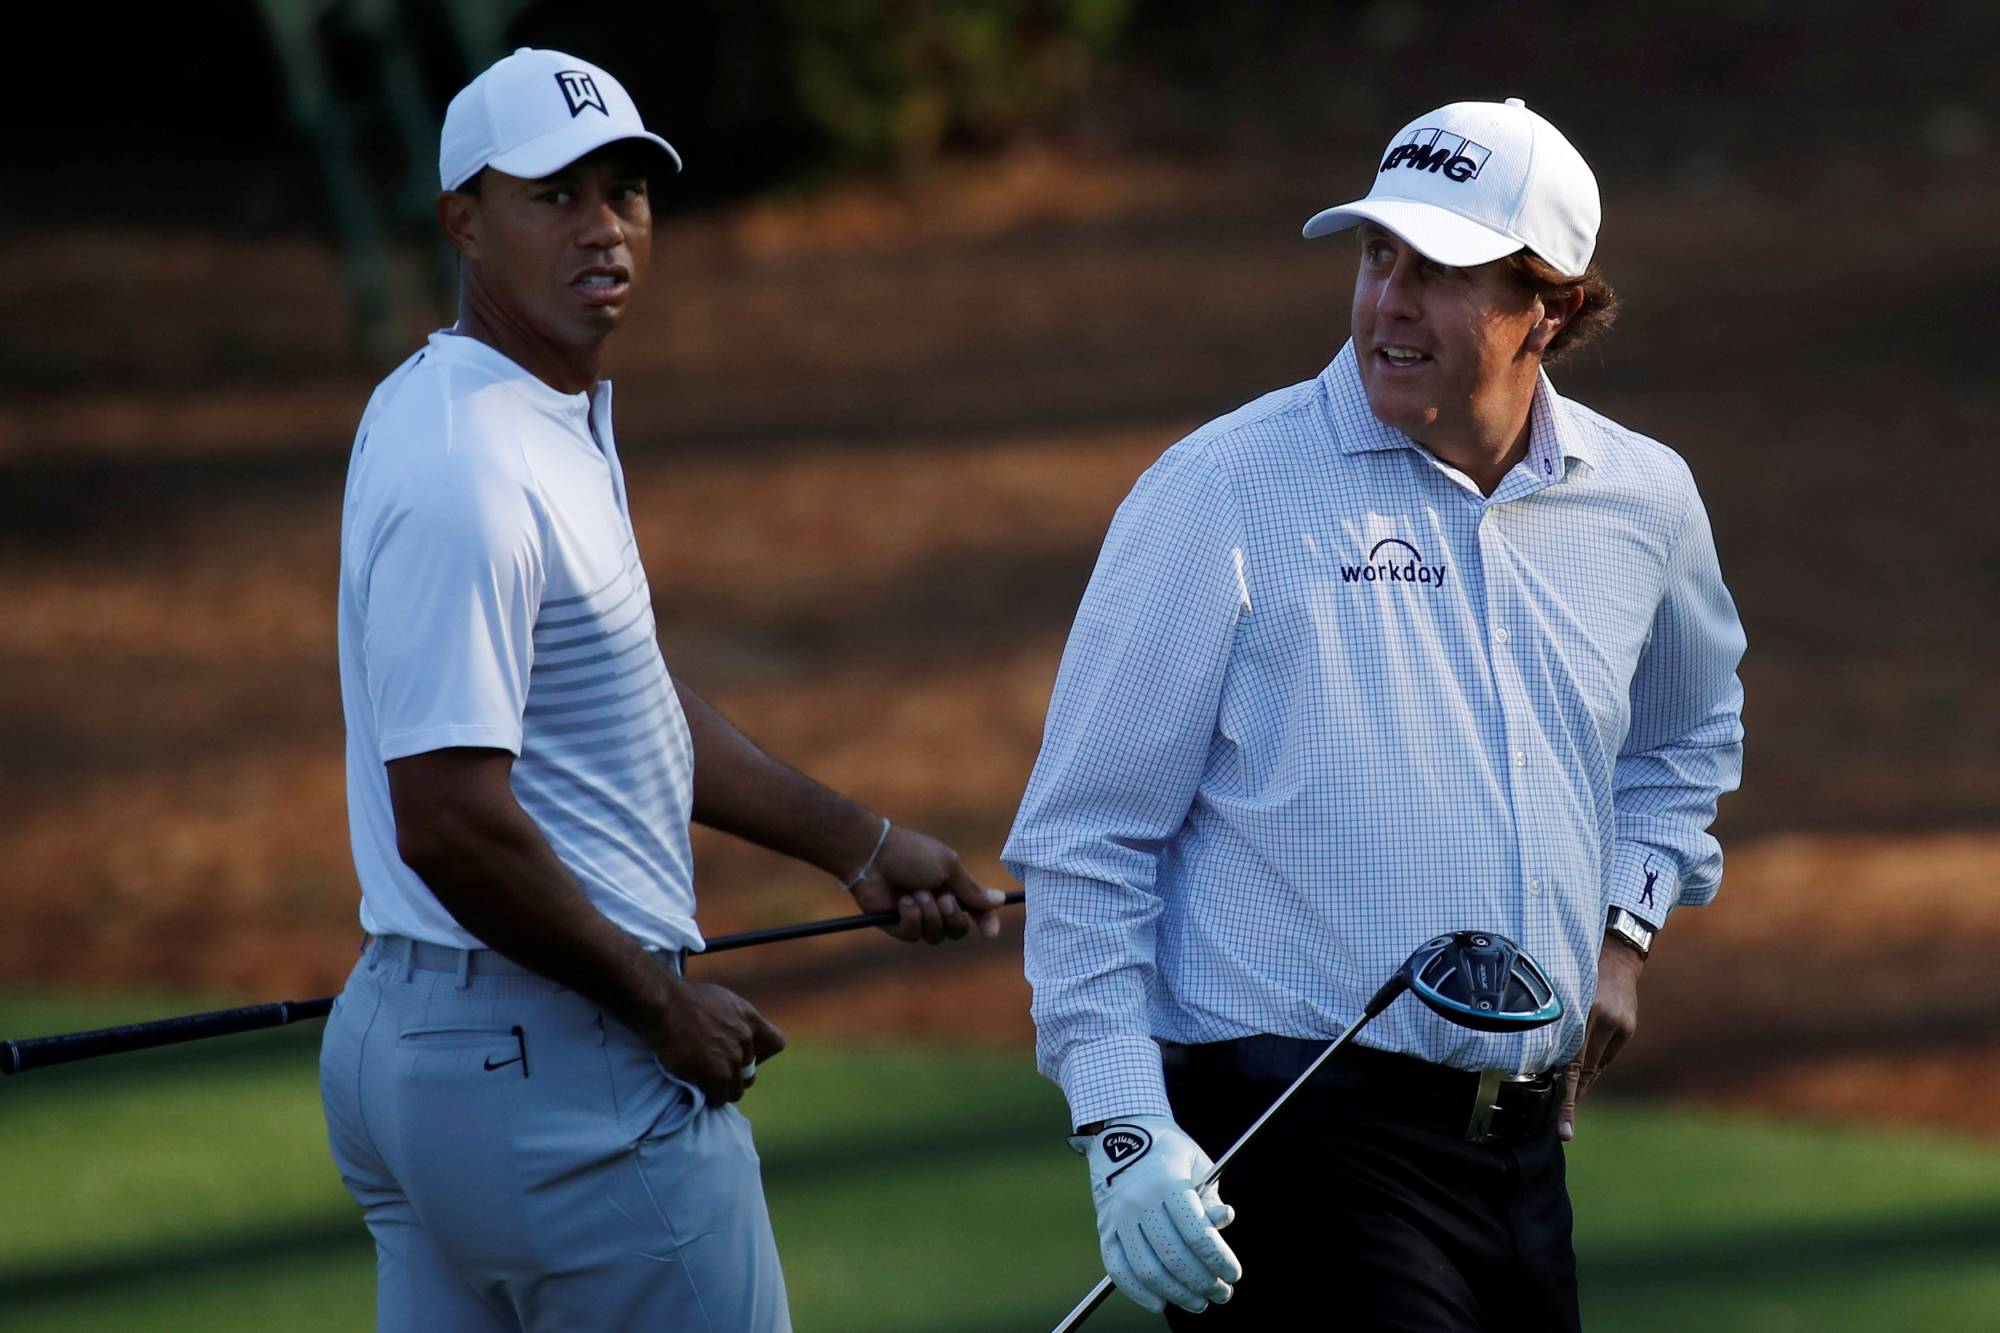 Tiger Woods (left) and Phil Mickelson walk to the 11th tee during the second day of practice for the Masters on April 3, 2018, in Augusta, Georgia. | REUTERS